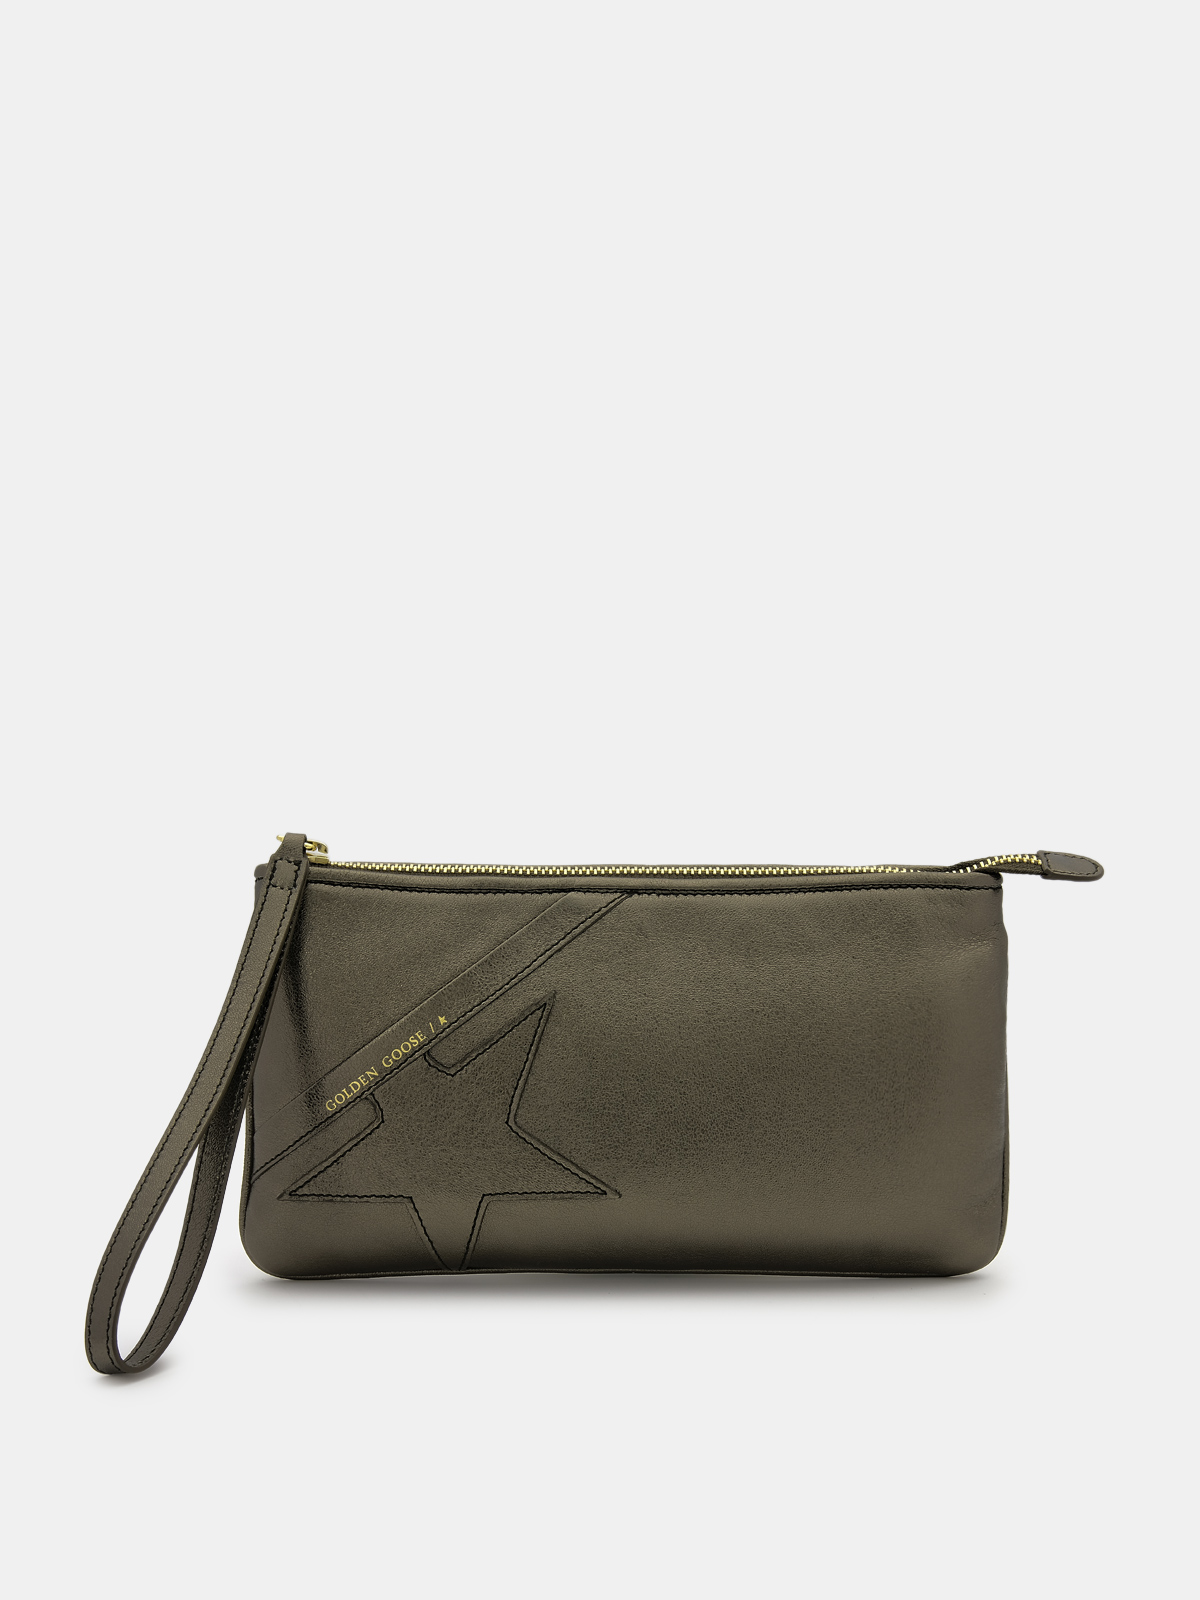 Golden Goose - Green Star Wrist clutch bag in laminated leather in